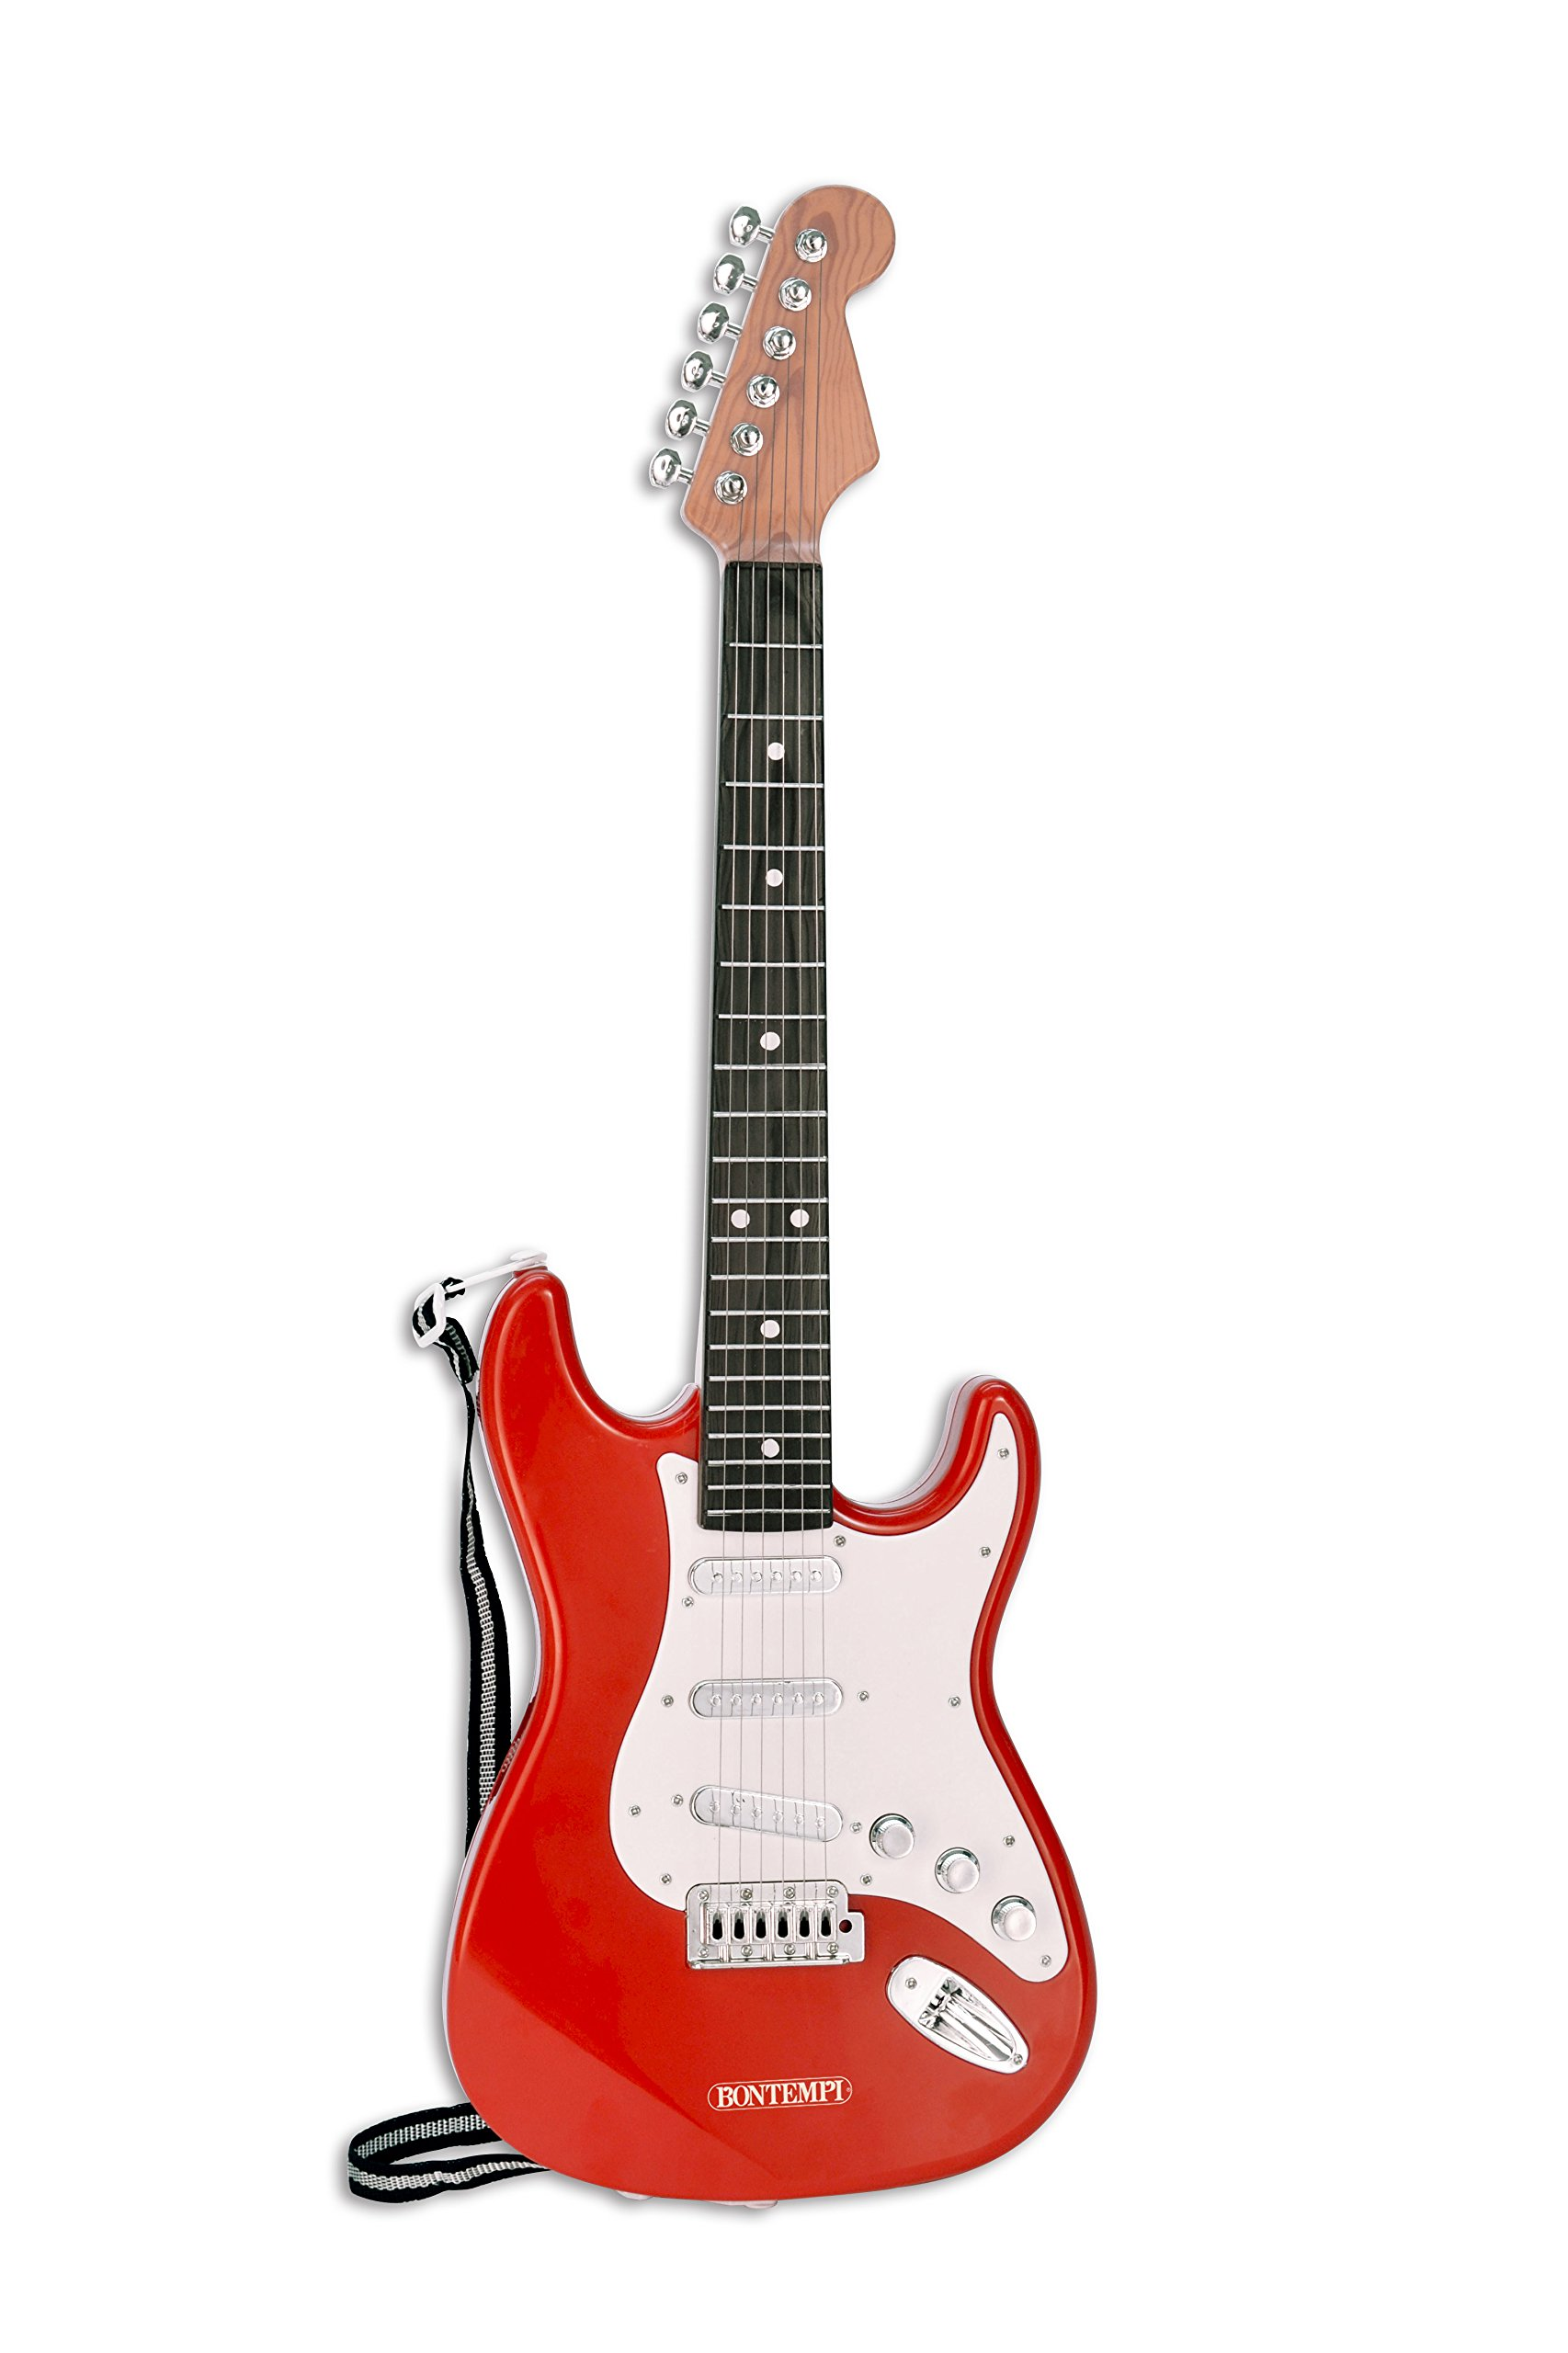 Bontempi 6 String Electric Guitar with pre-loaded songs & shoulder strap - Red